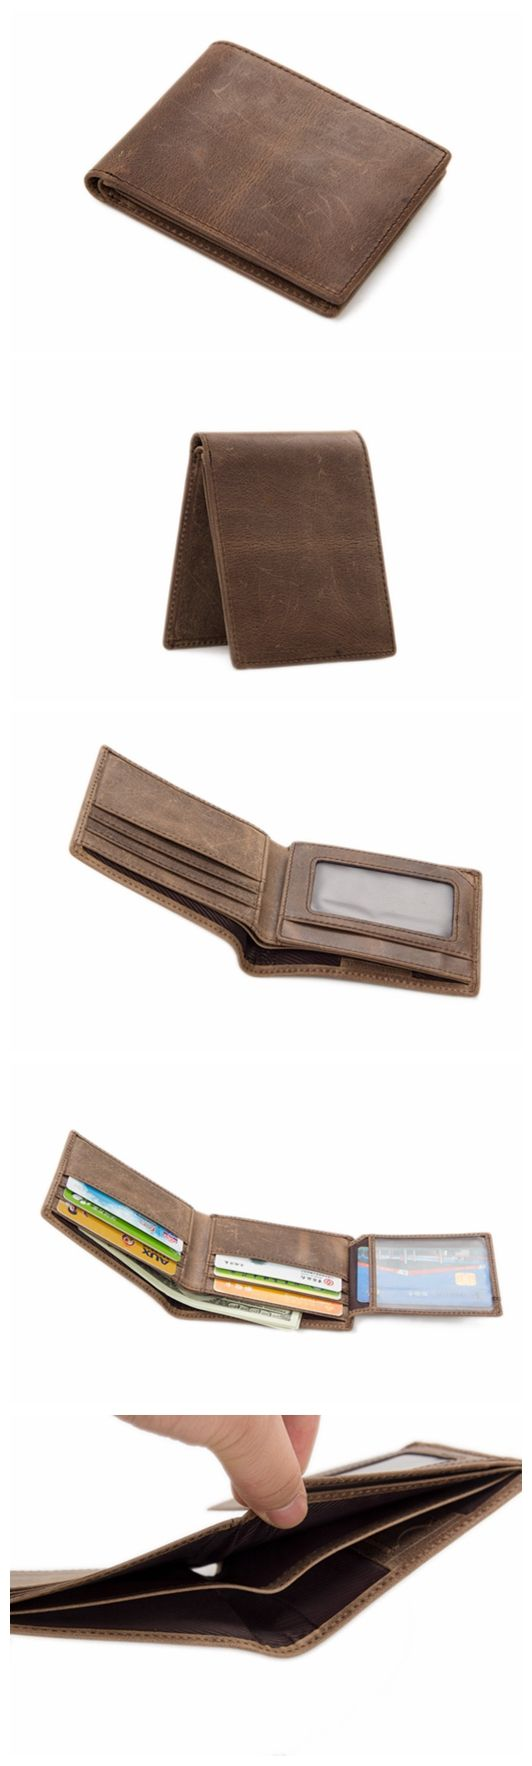 Handcrafted Wholesale High Quality <b>Genuine Leather Wallet</b> Money ...